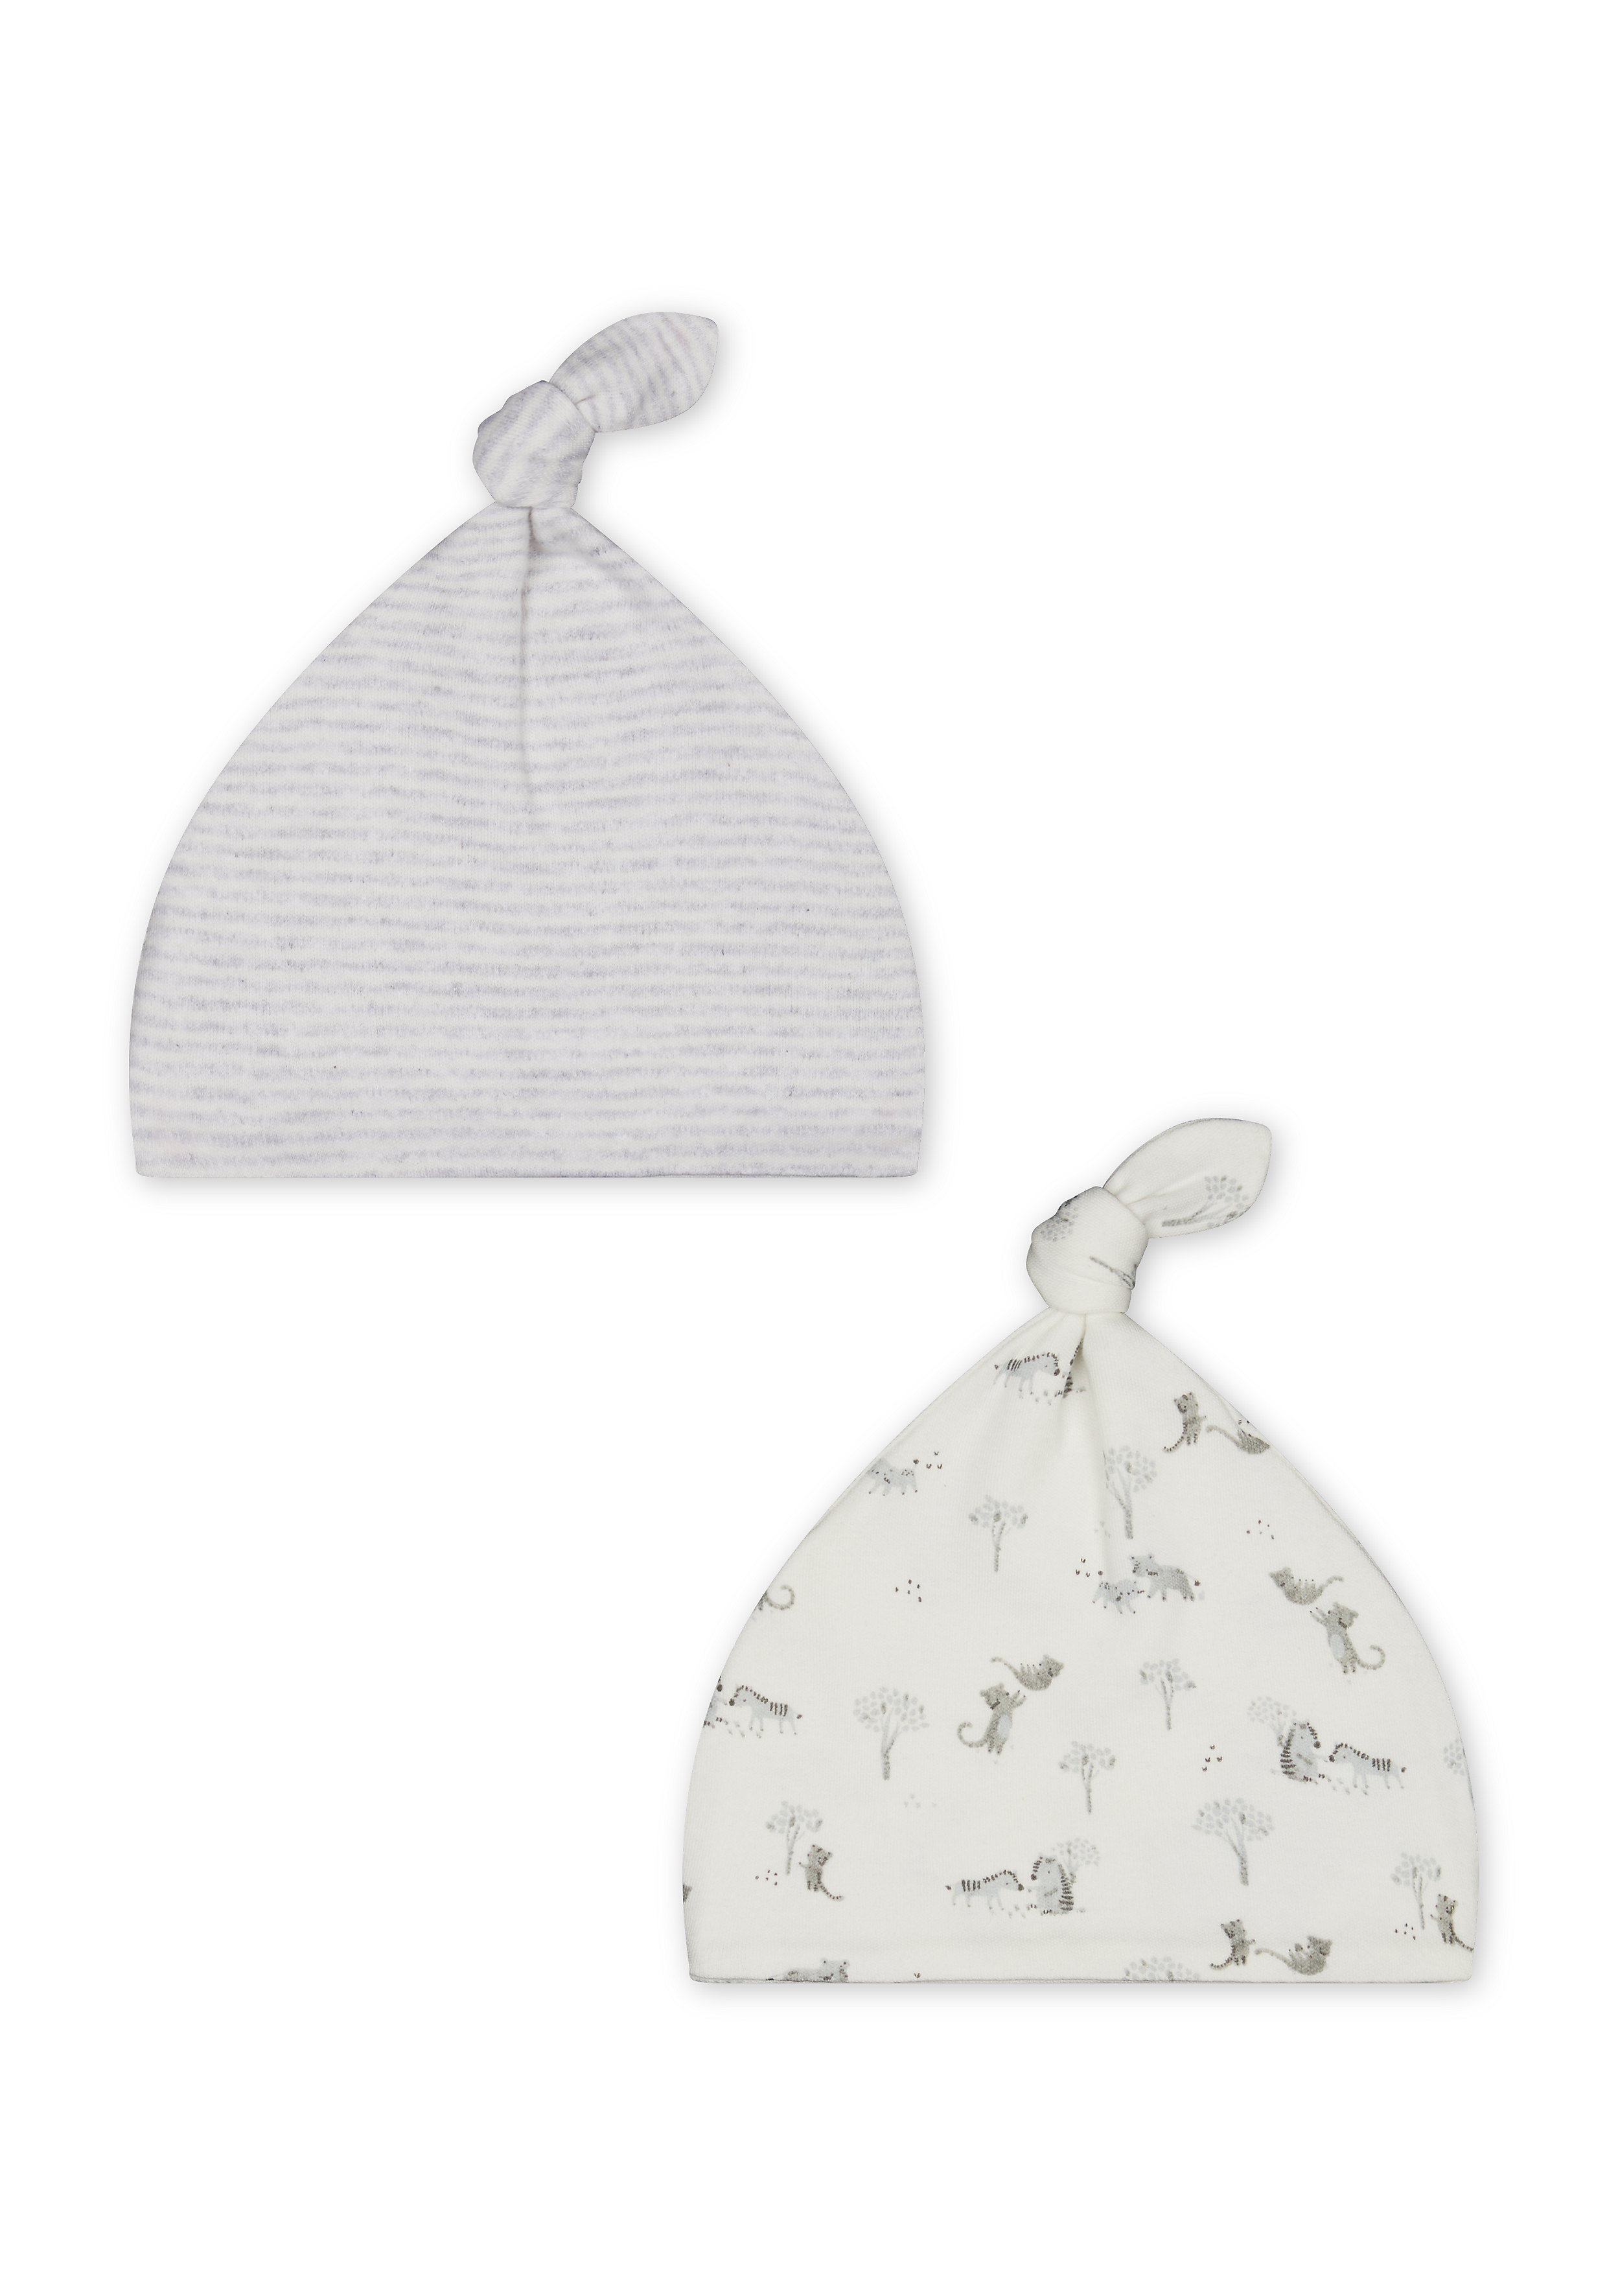 Mothercare | Unisex Top Knot Hats Stripe And Animal Print - Pack Of 2 - White Grey